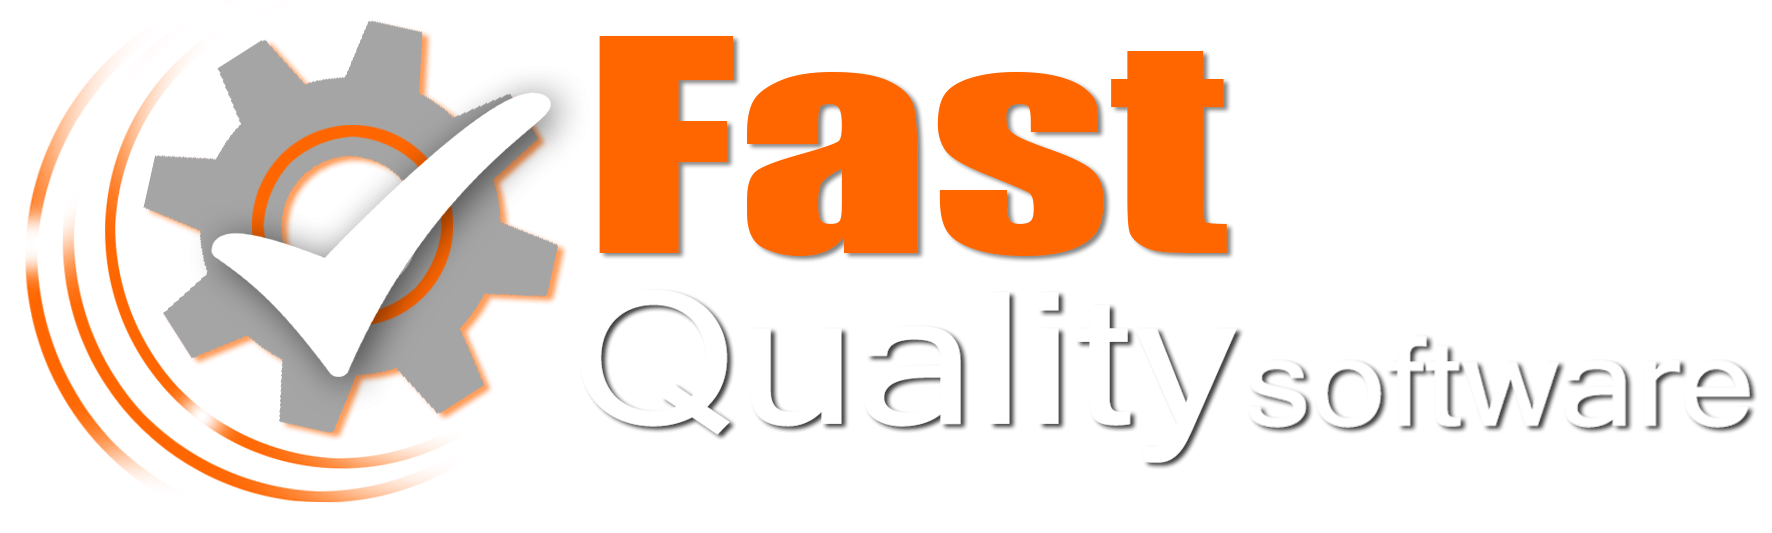 Fastquality